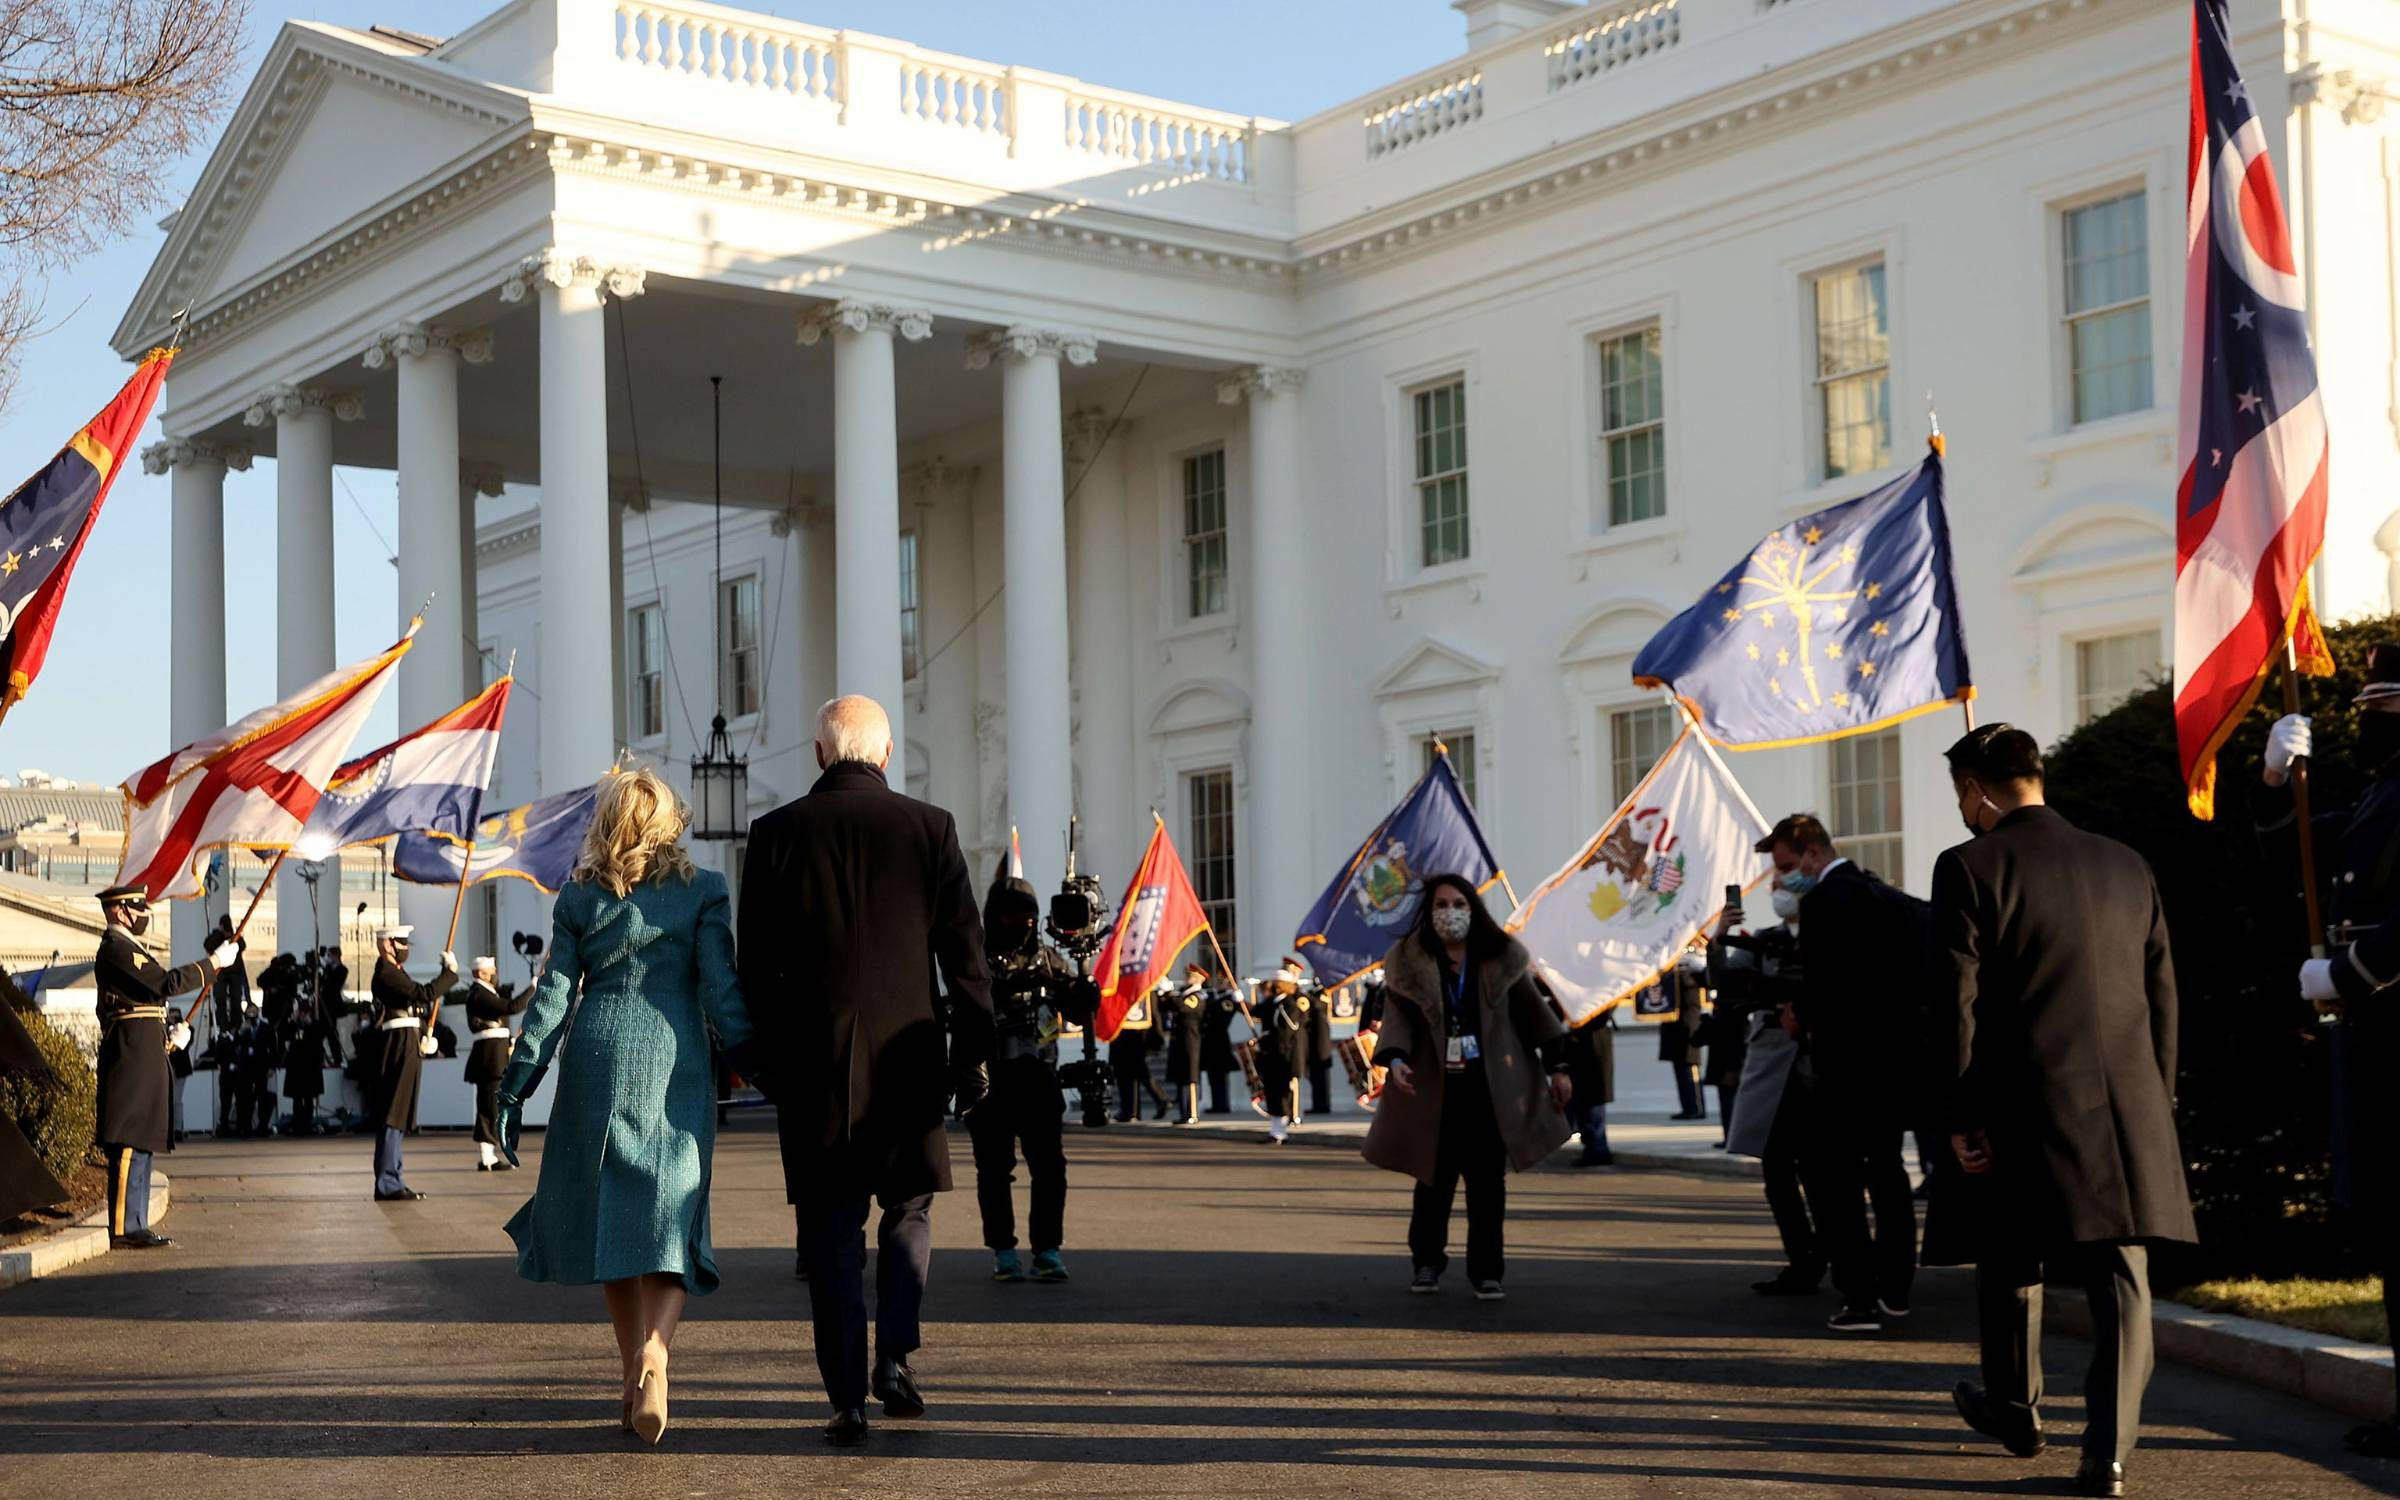 Arriving at the White House on inauguration day. Credit: Getty Images.